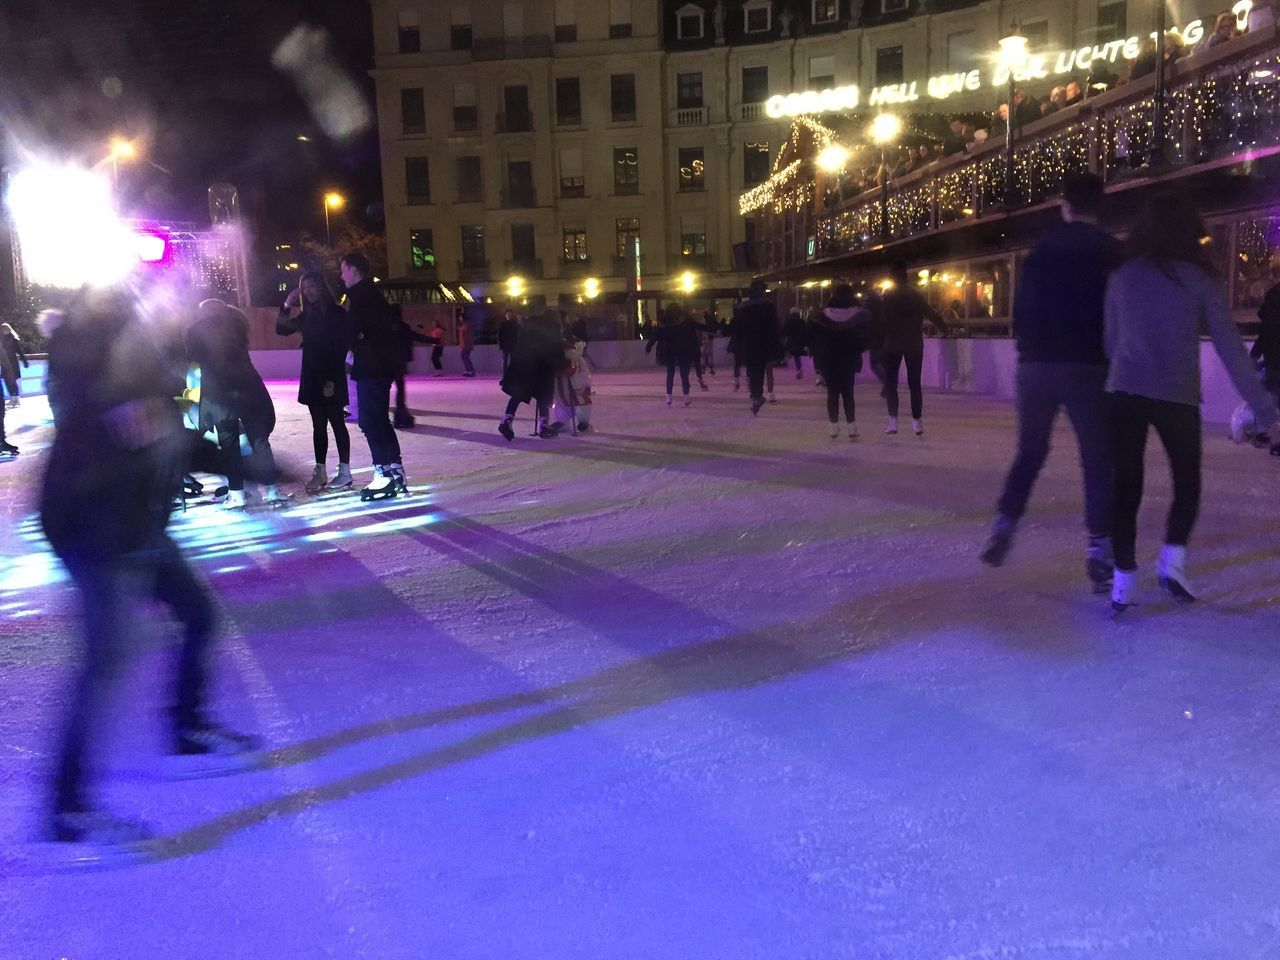 large group of people, built structure, architecture, real people, building exterior, illuminated, men, leisure activity, night, women, lifestyles, city, city life, outdoors, crowd, ice rink, adult, people